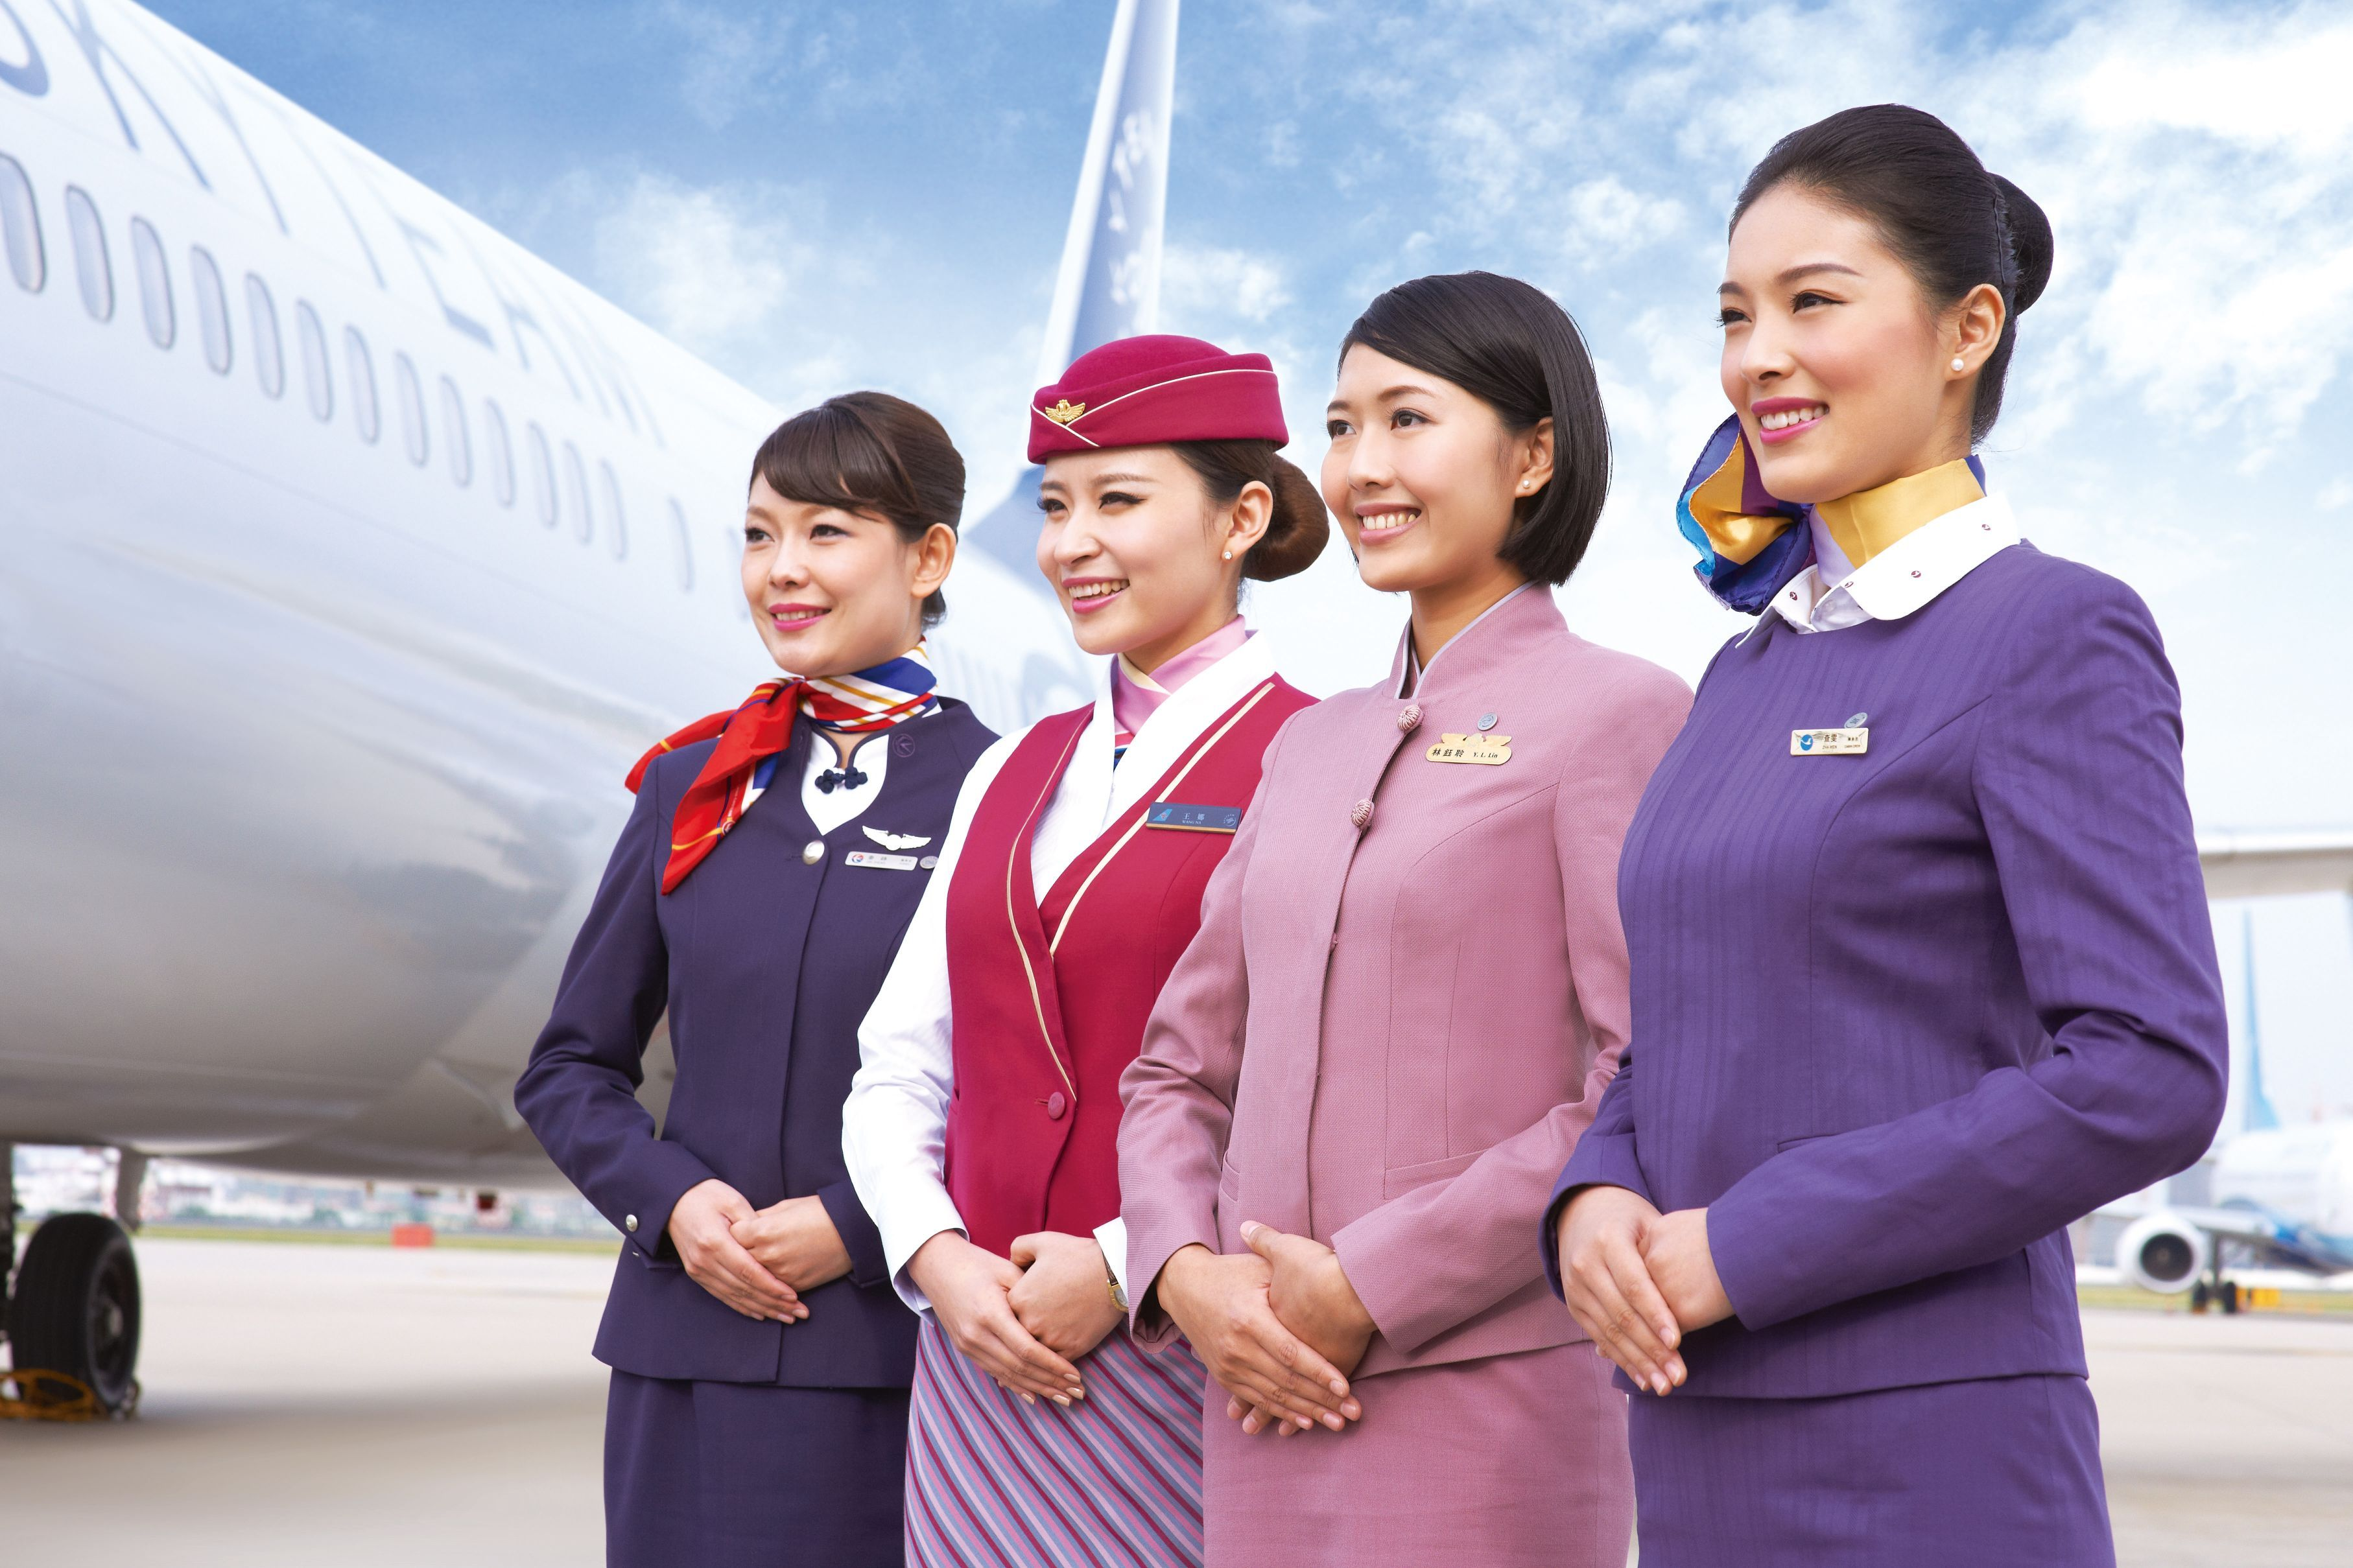 #Skyteam Greater China Pass - China Eastern, China Southern, China Airlines and Xiamen Airlines.